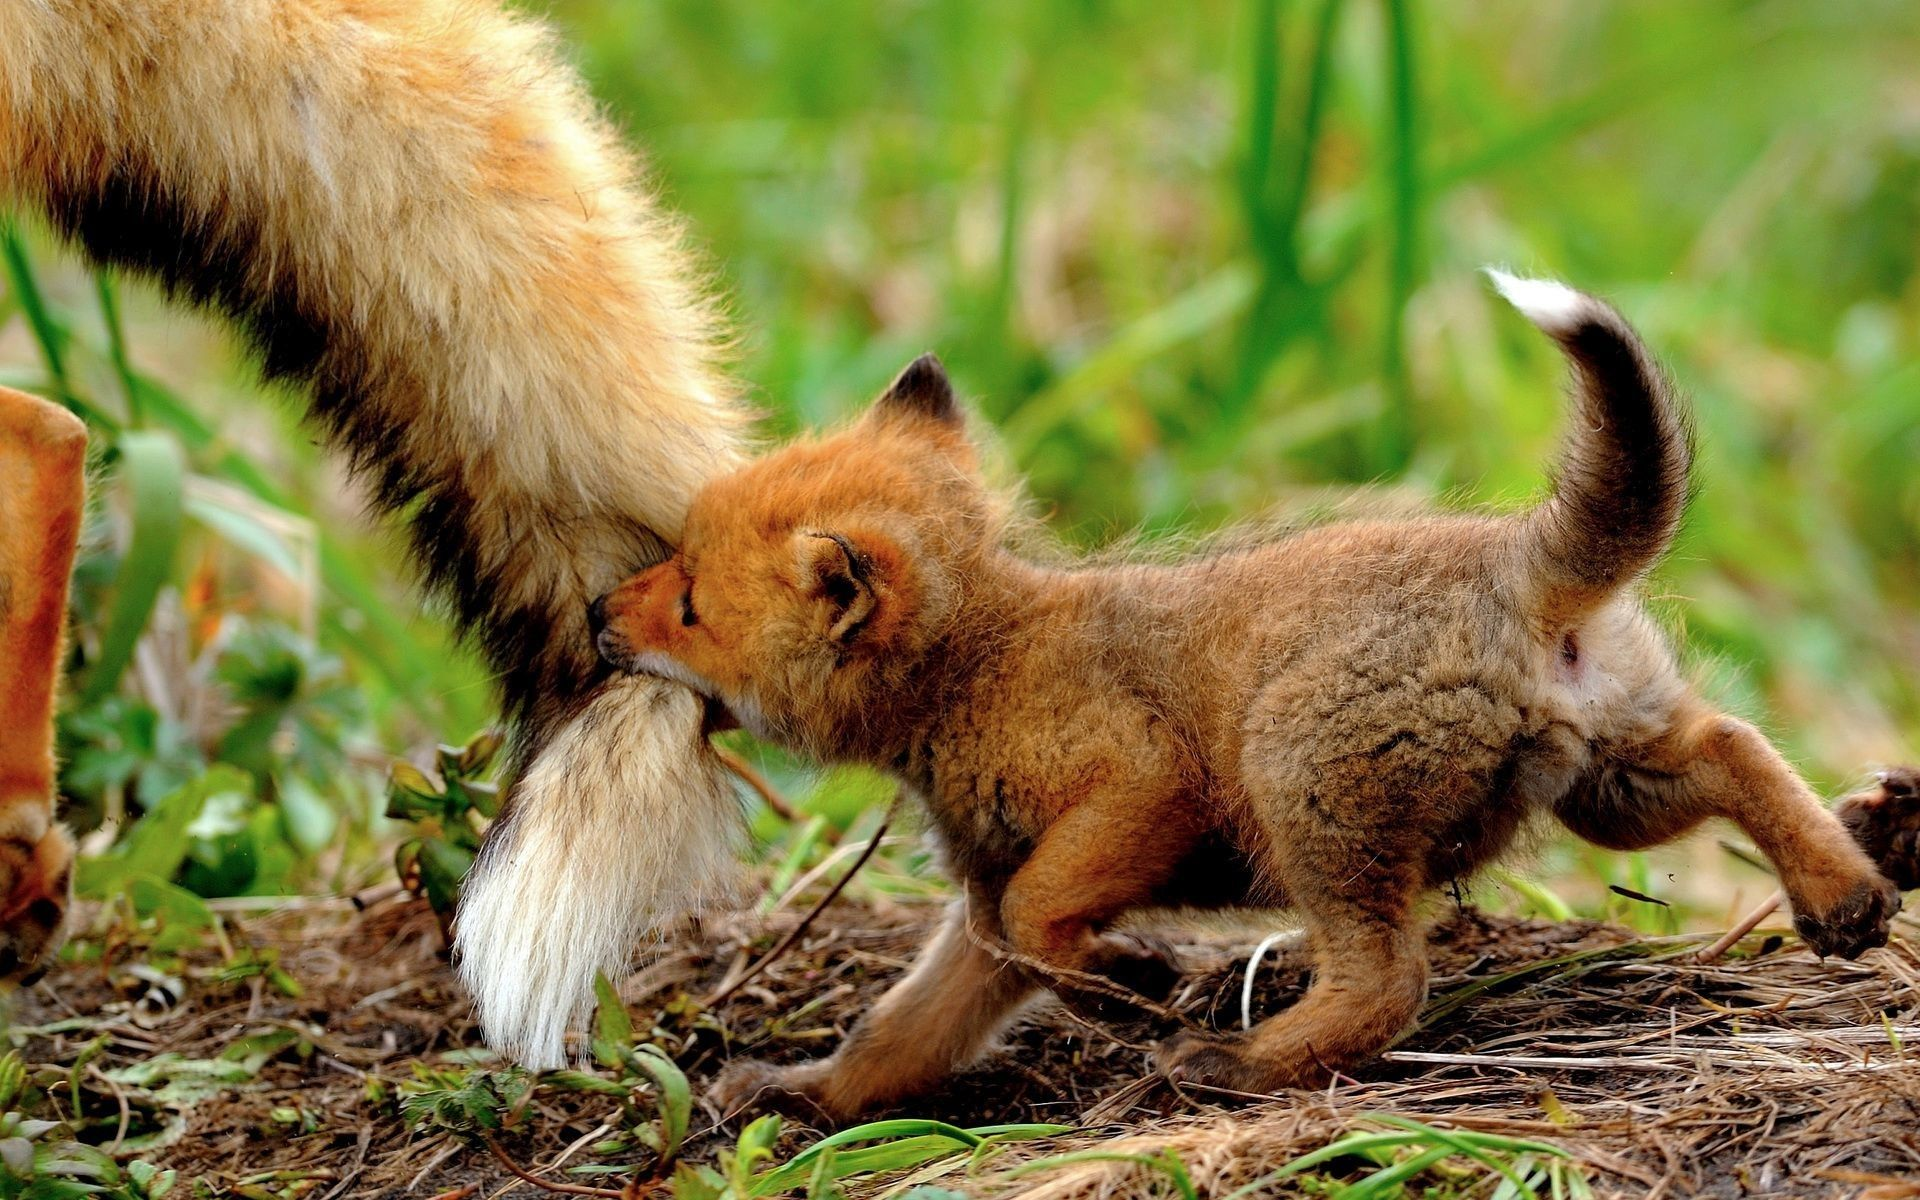 Got your tail! CubFriday FridayFeeling Cute wild